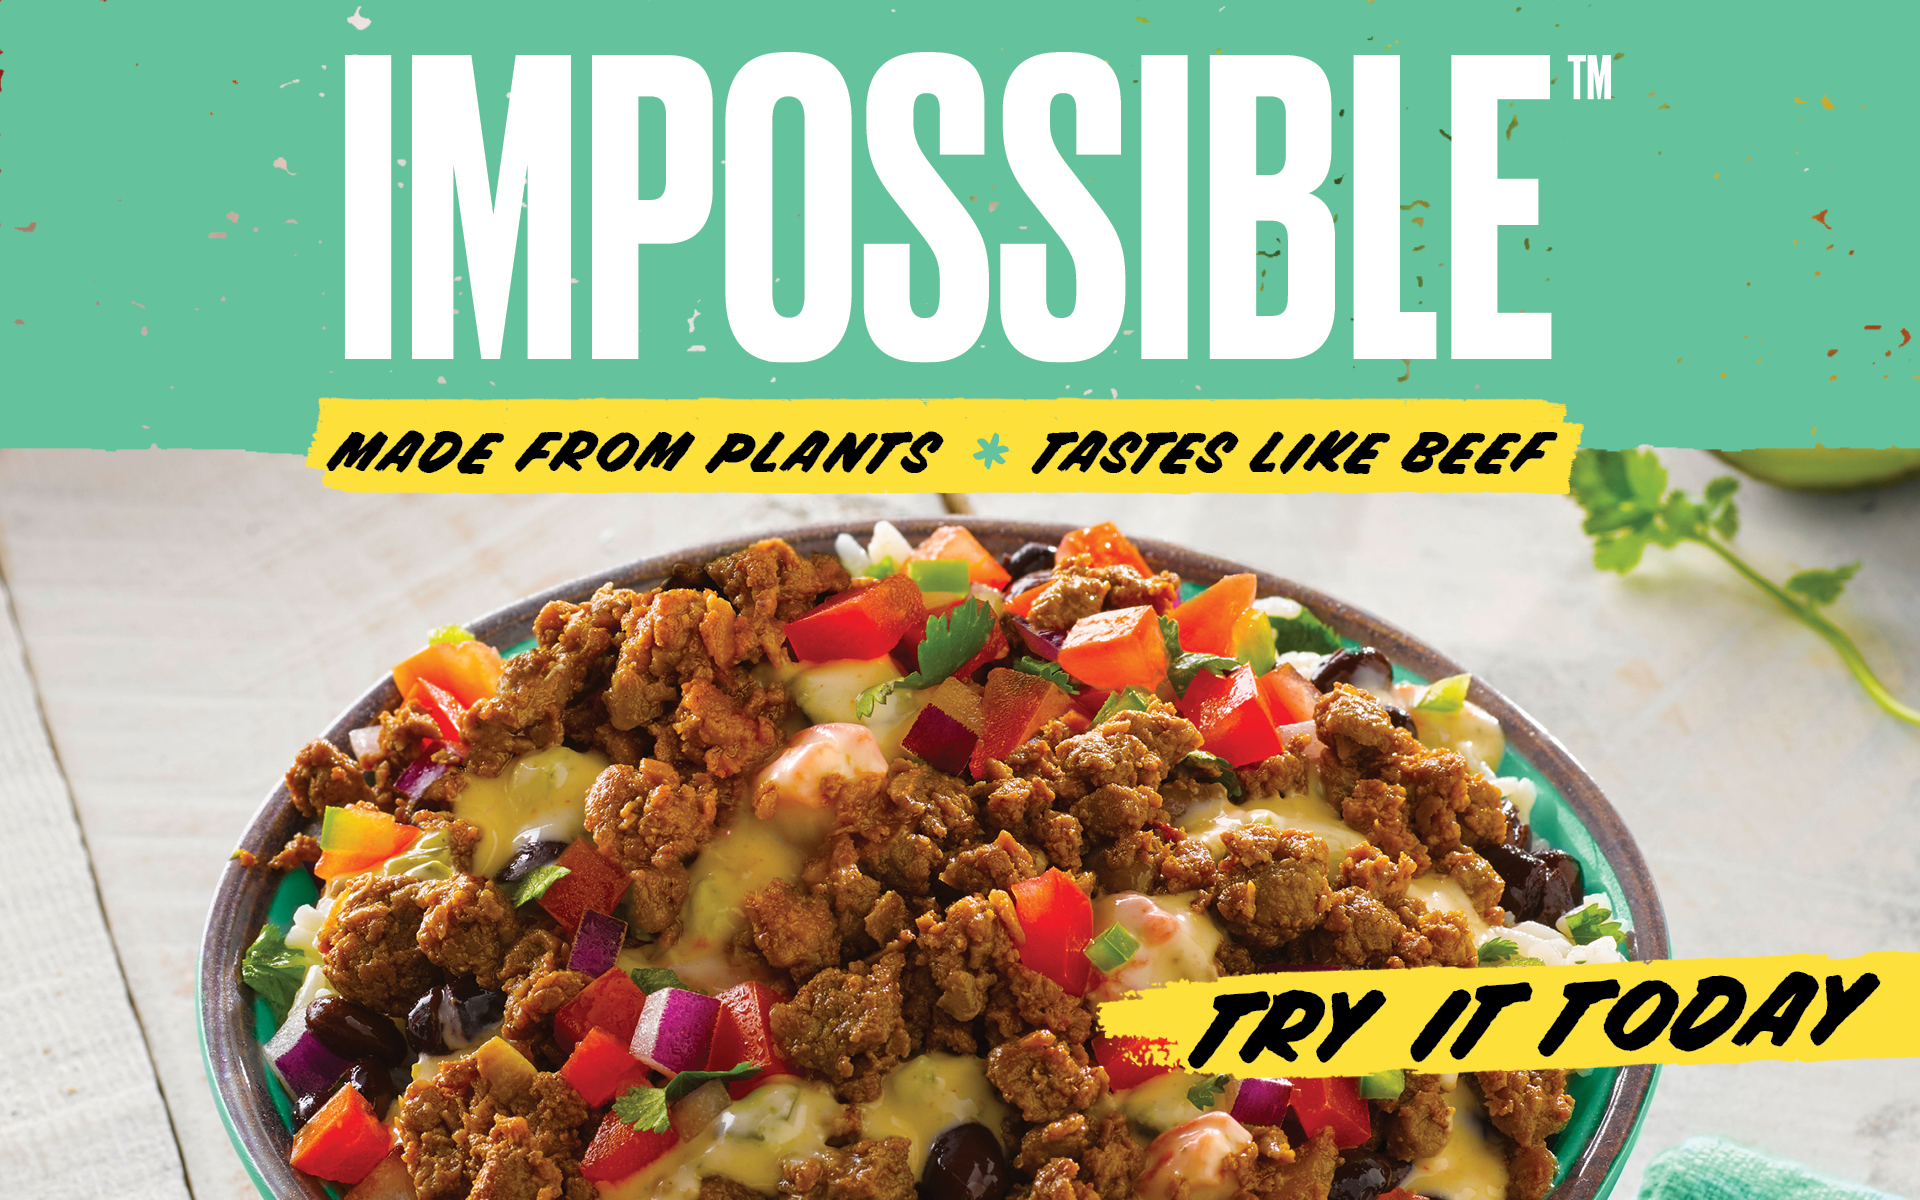 Qdoba's Impossible Meat tacos and bowls are 100% meatless